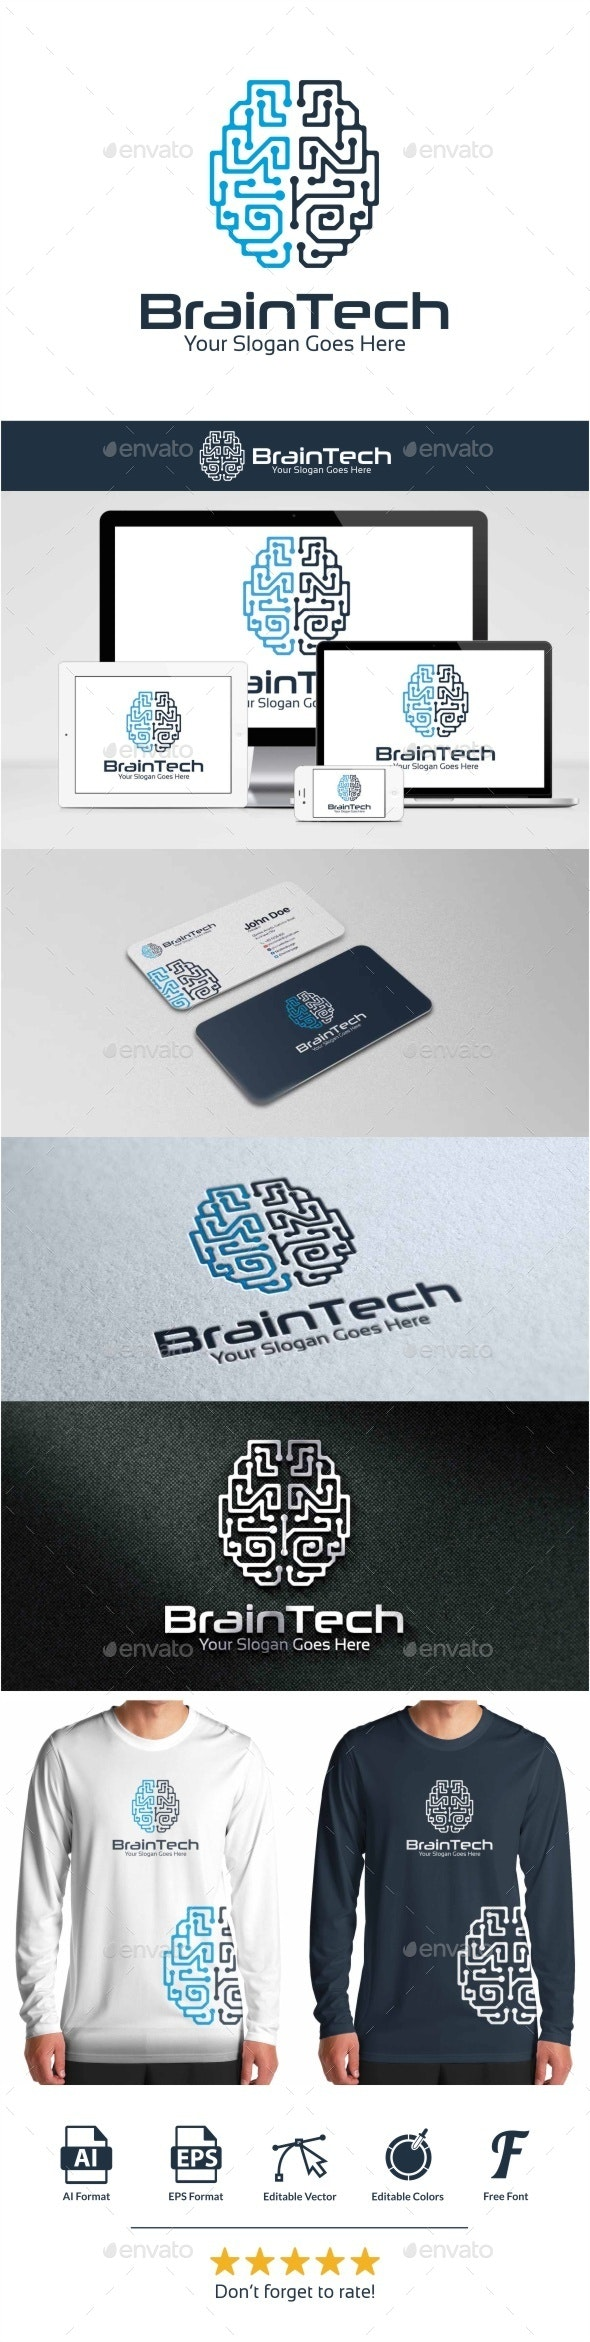 BrainTech Logo - Vector Abstract